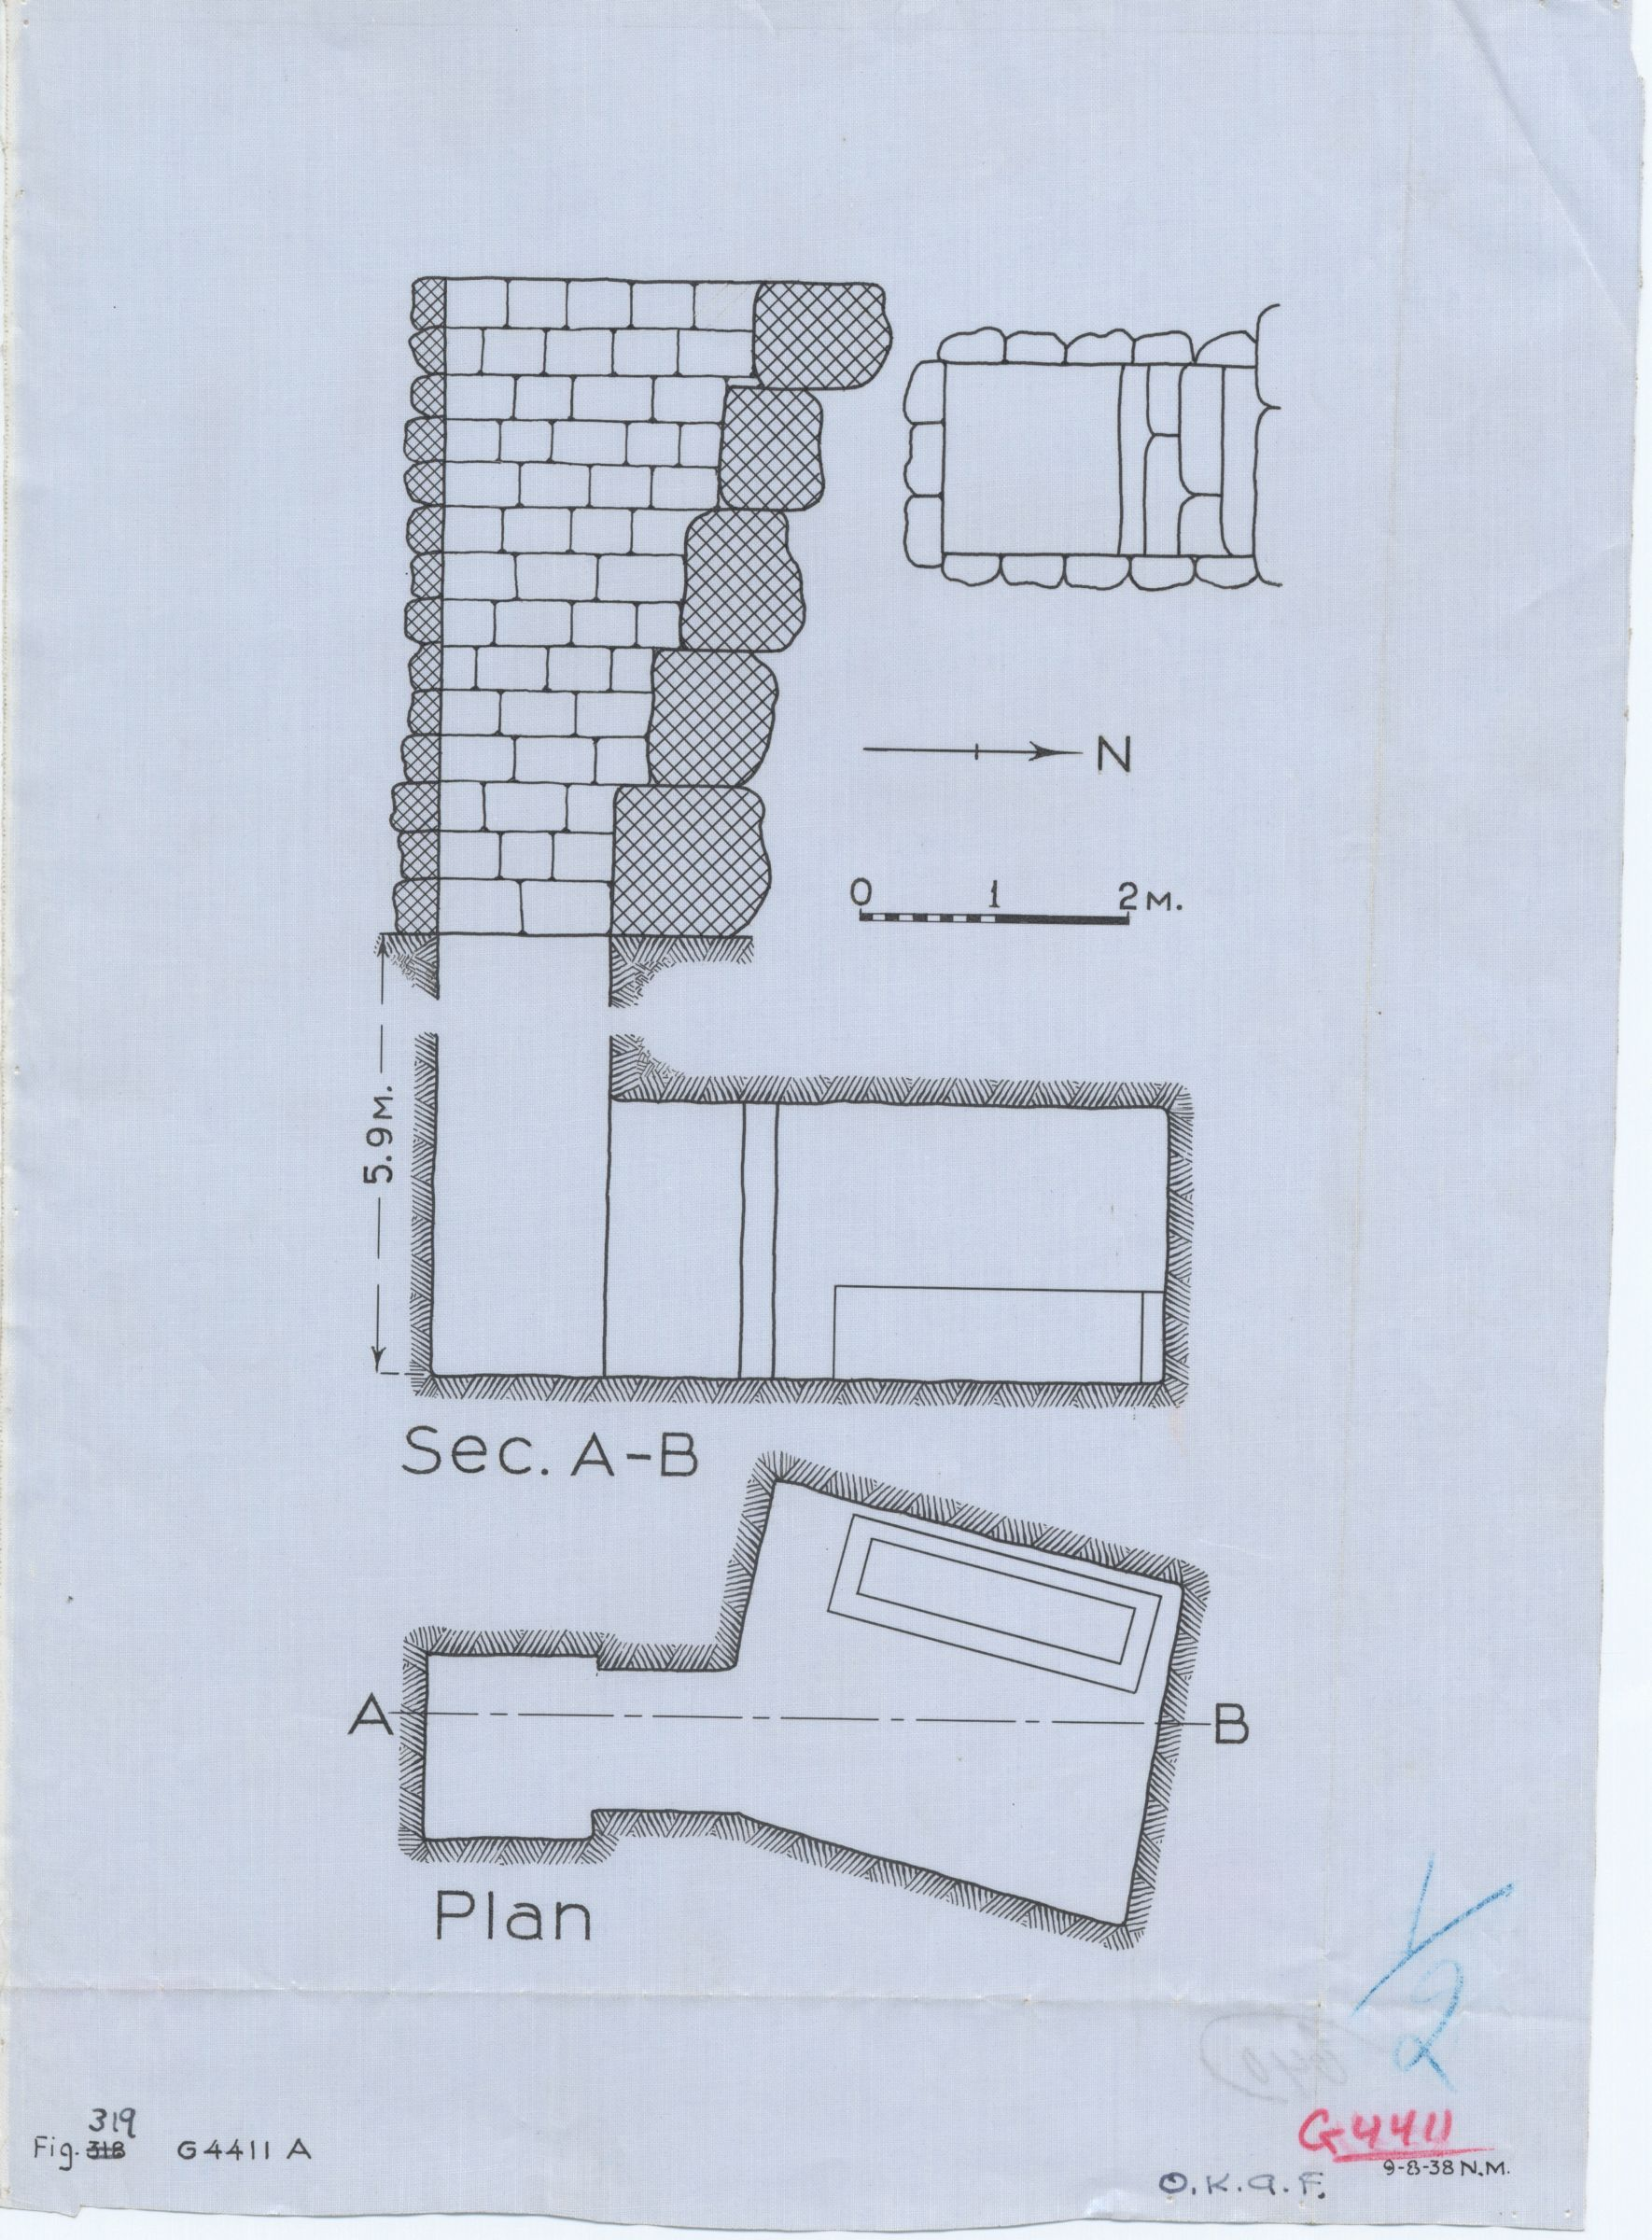 Maps and plans: G 4411, Shaft A